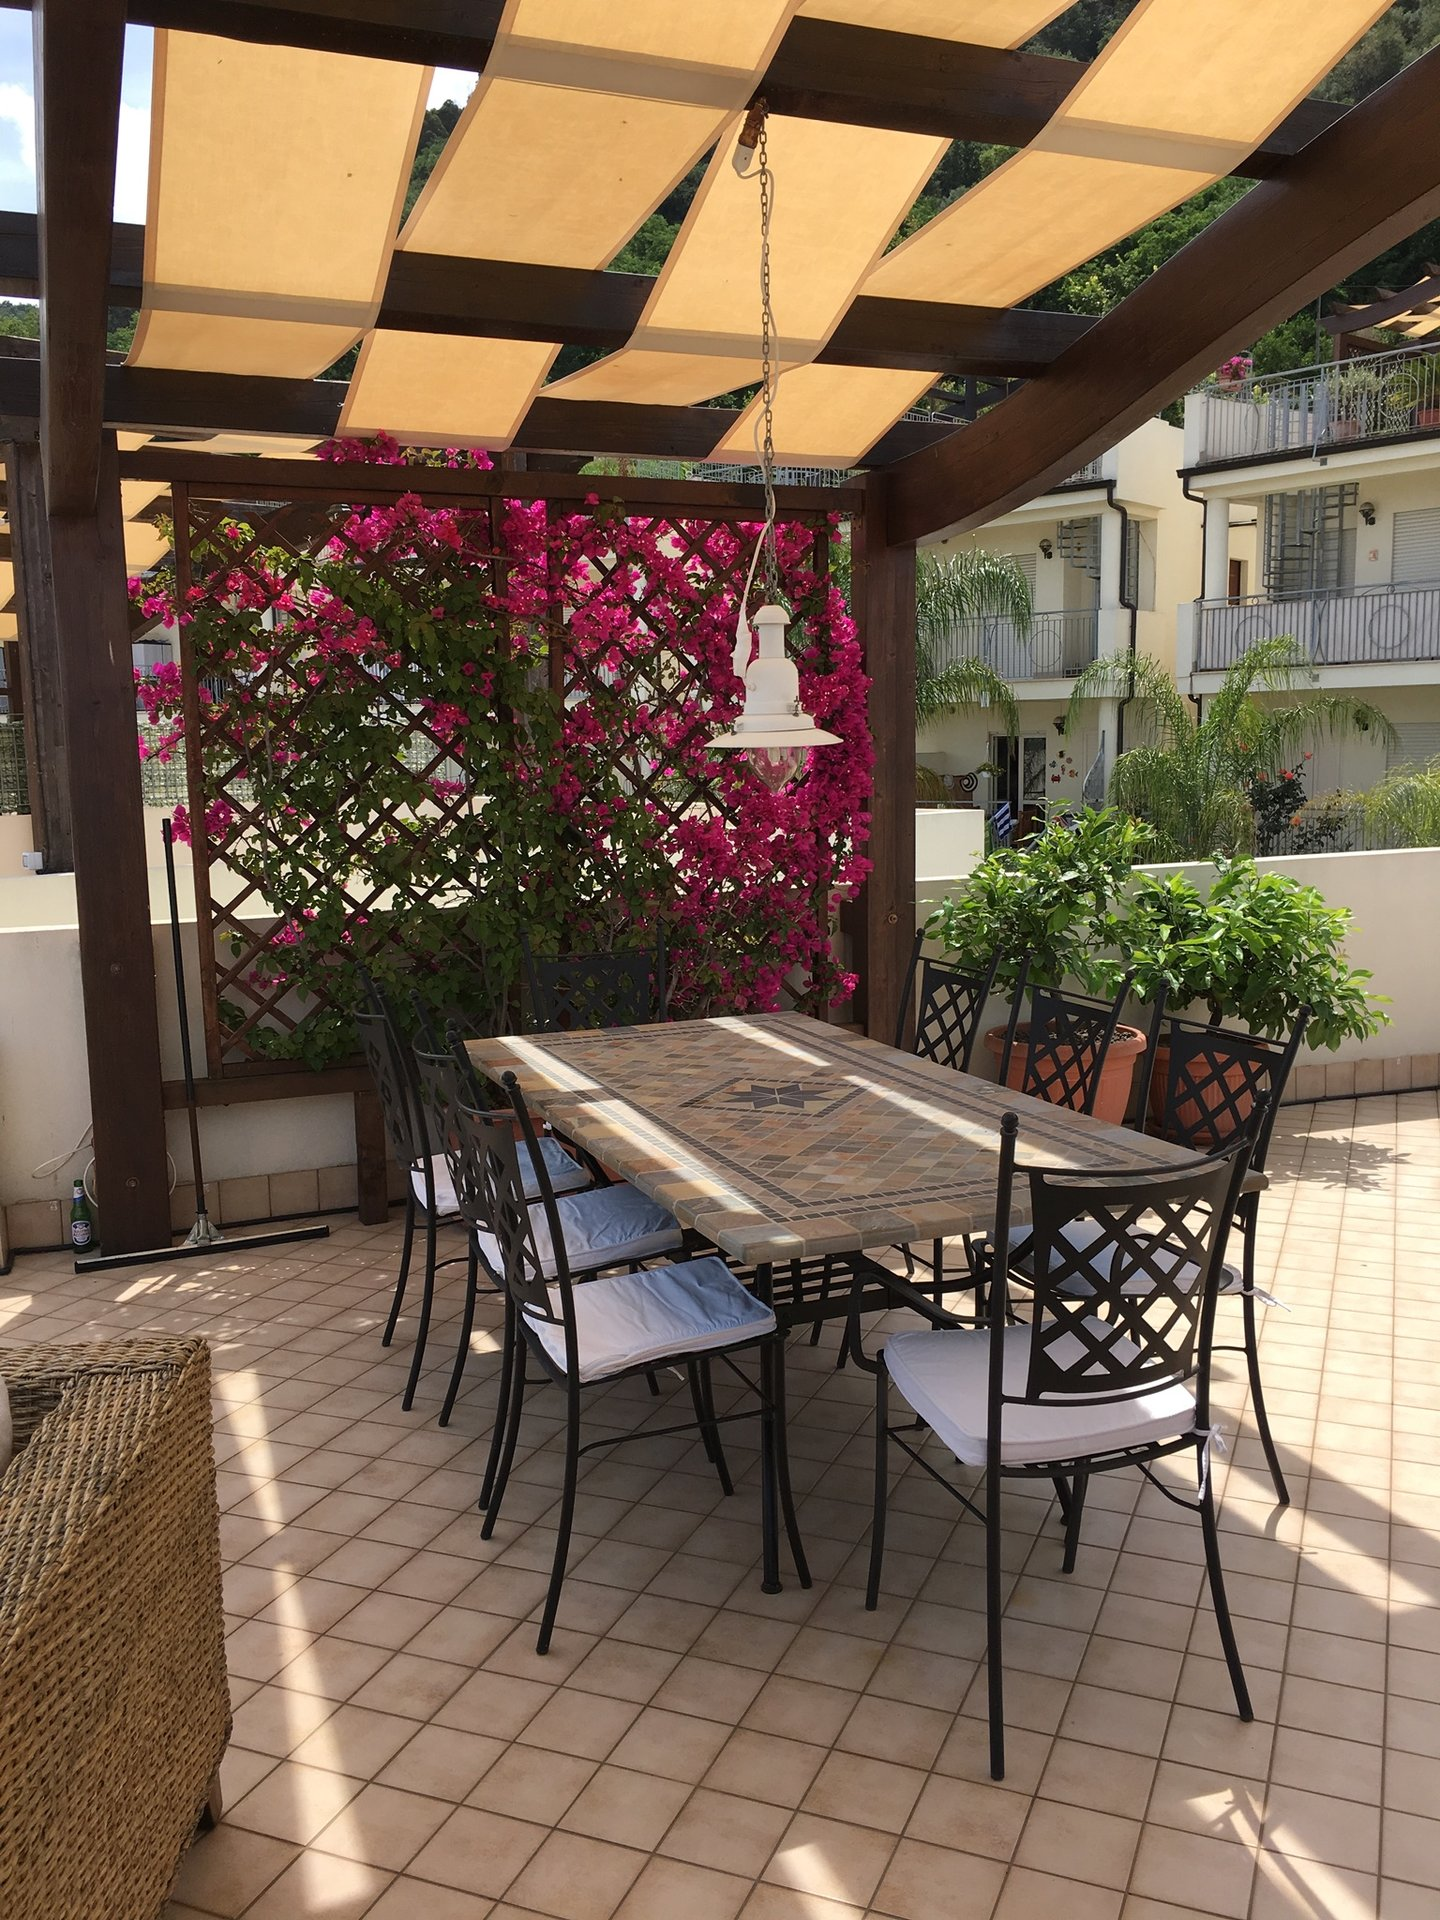 Easy to rent out - panoramic sea views - pool - rooftop solarium